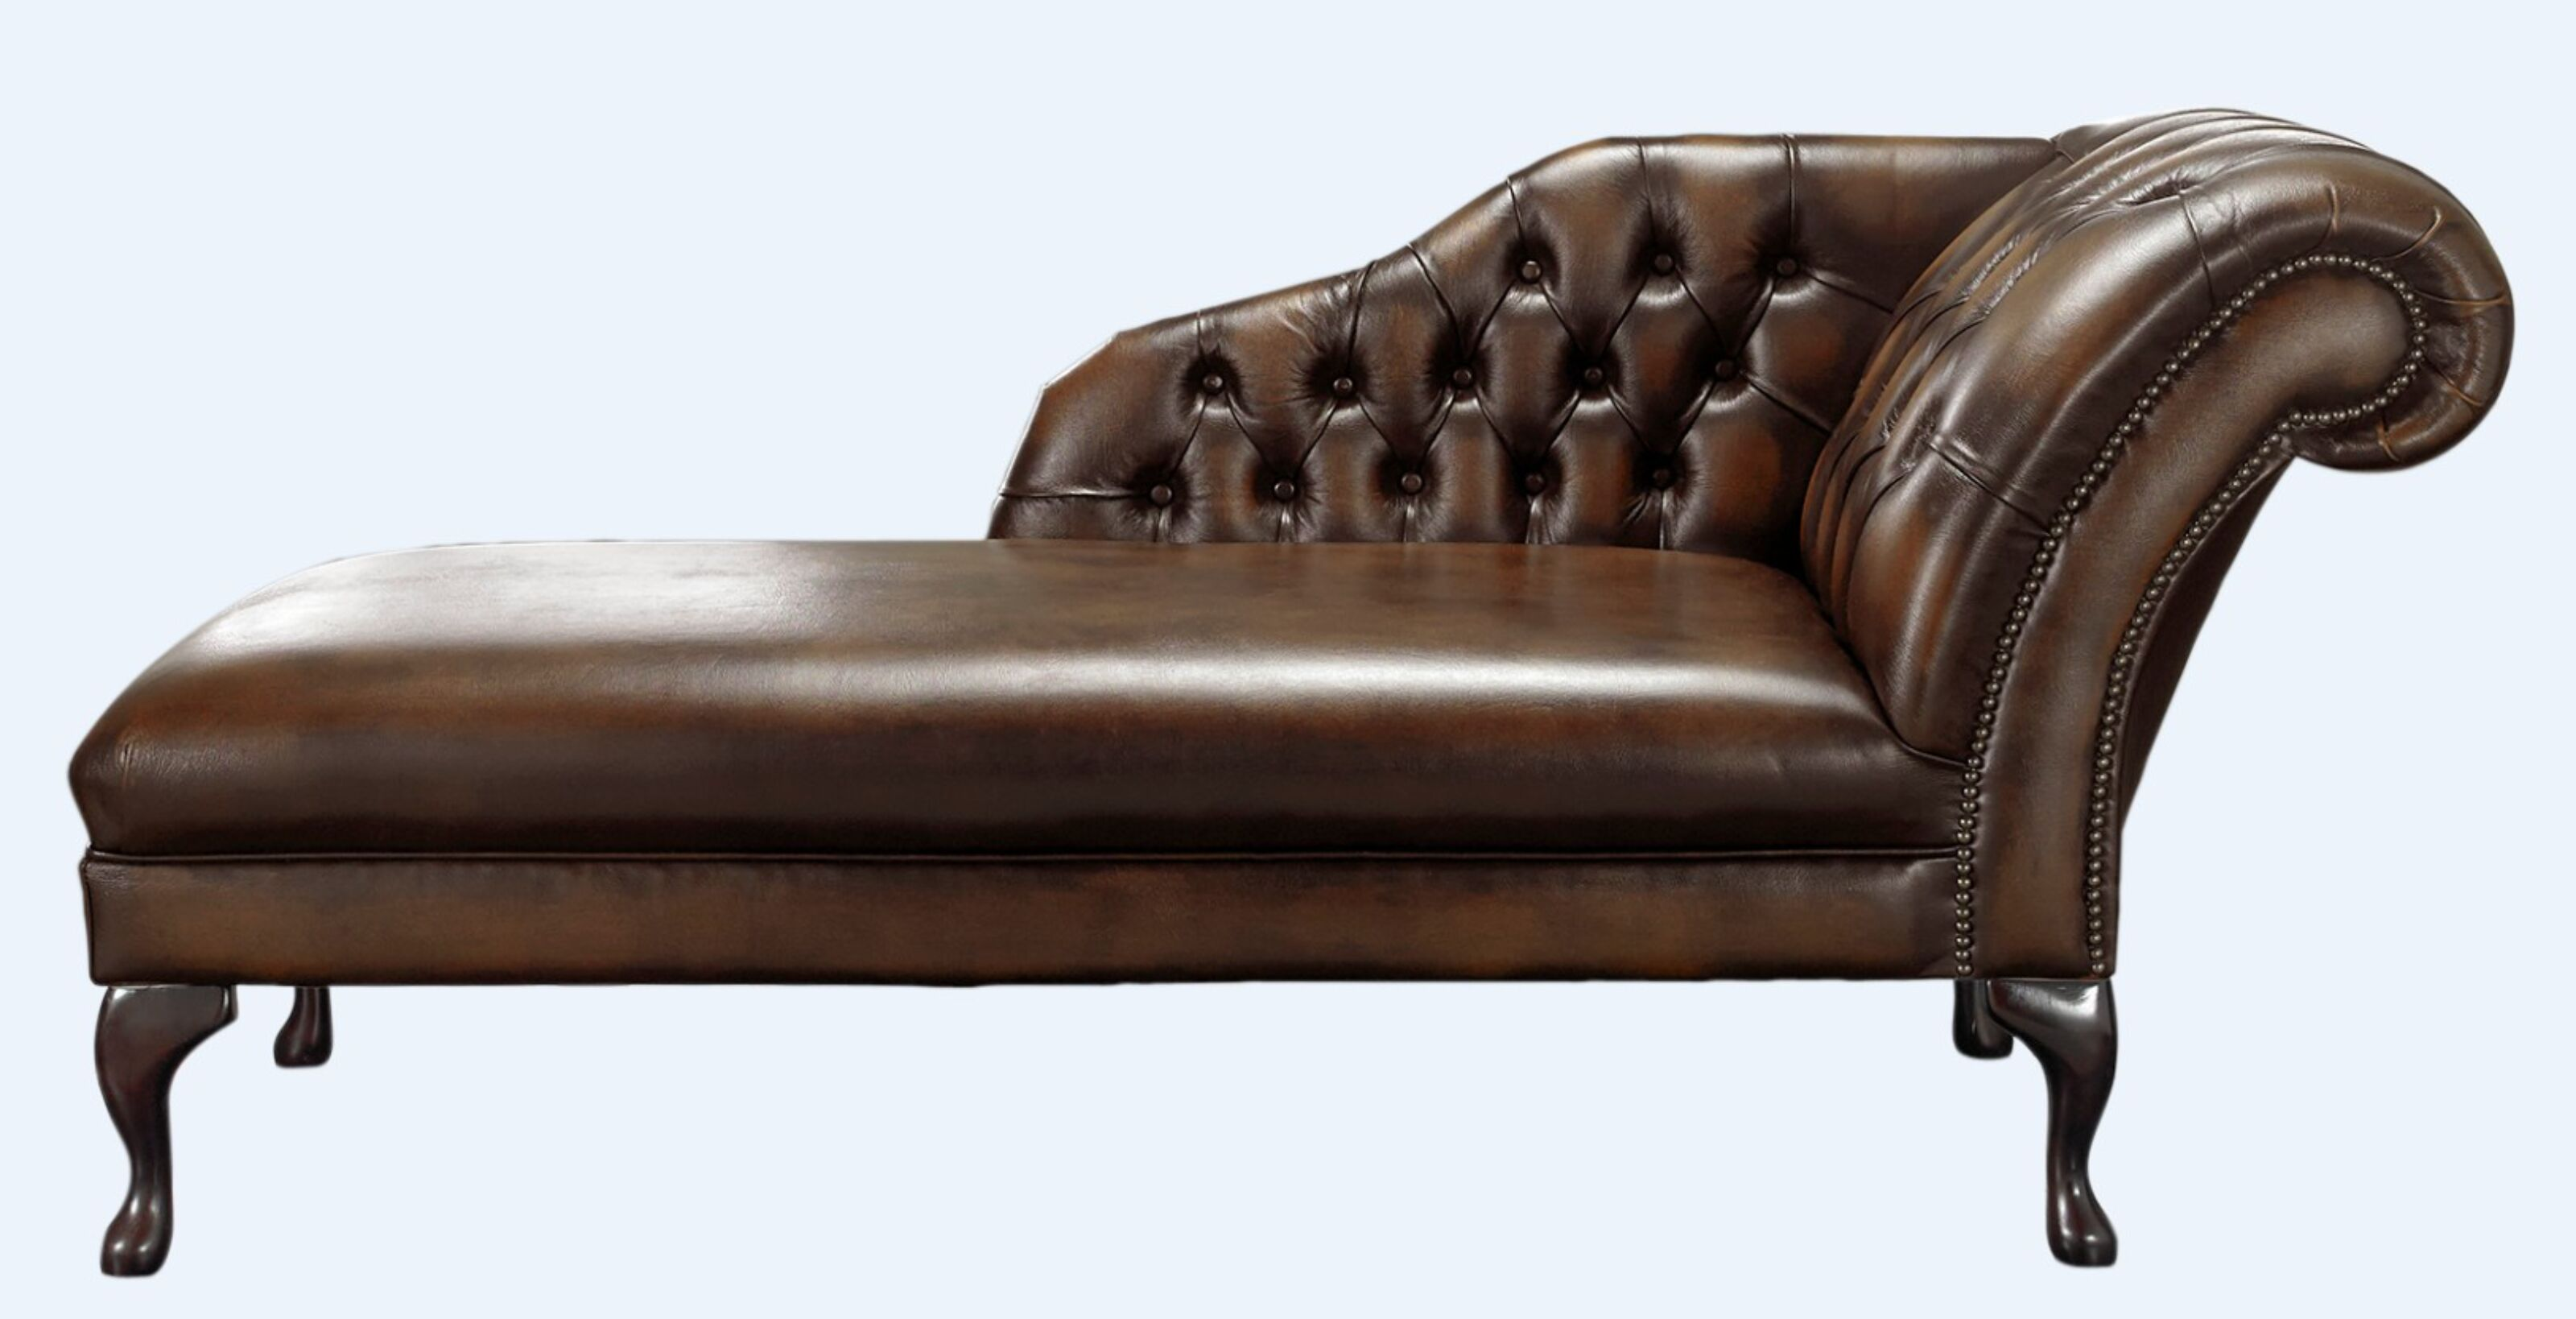 - Rub Off Antique Brown Leather Chesterfield Chaise Lounge Day Bed